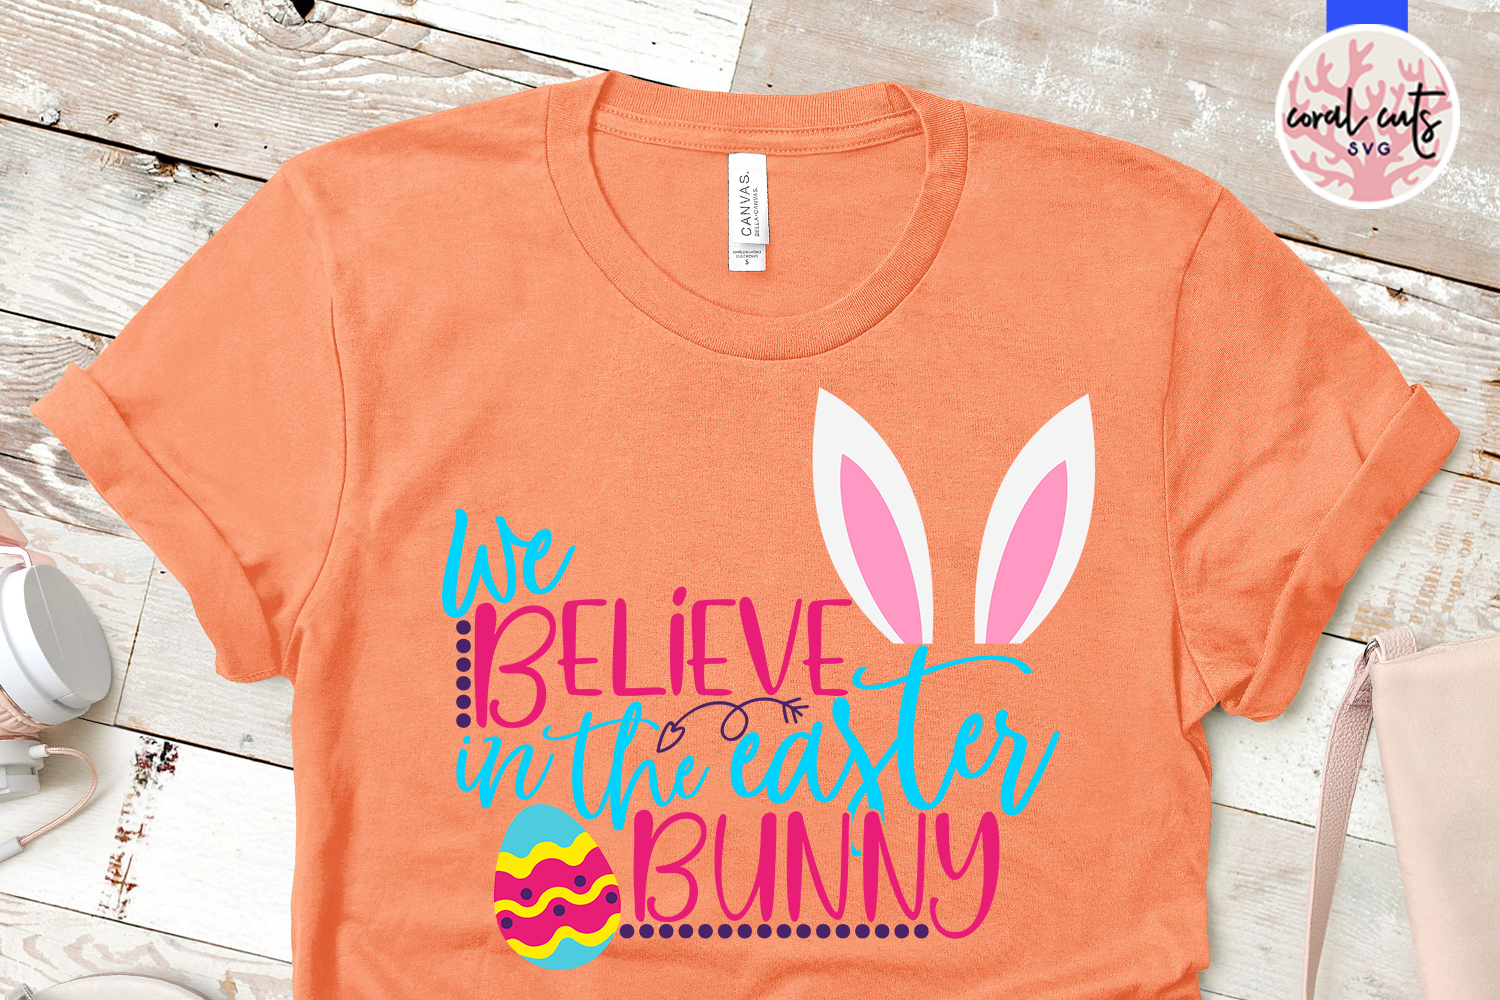 We believe in the easter bunny - Easter SVG EPS DXF PNG File example image 2